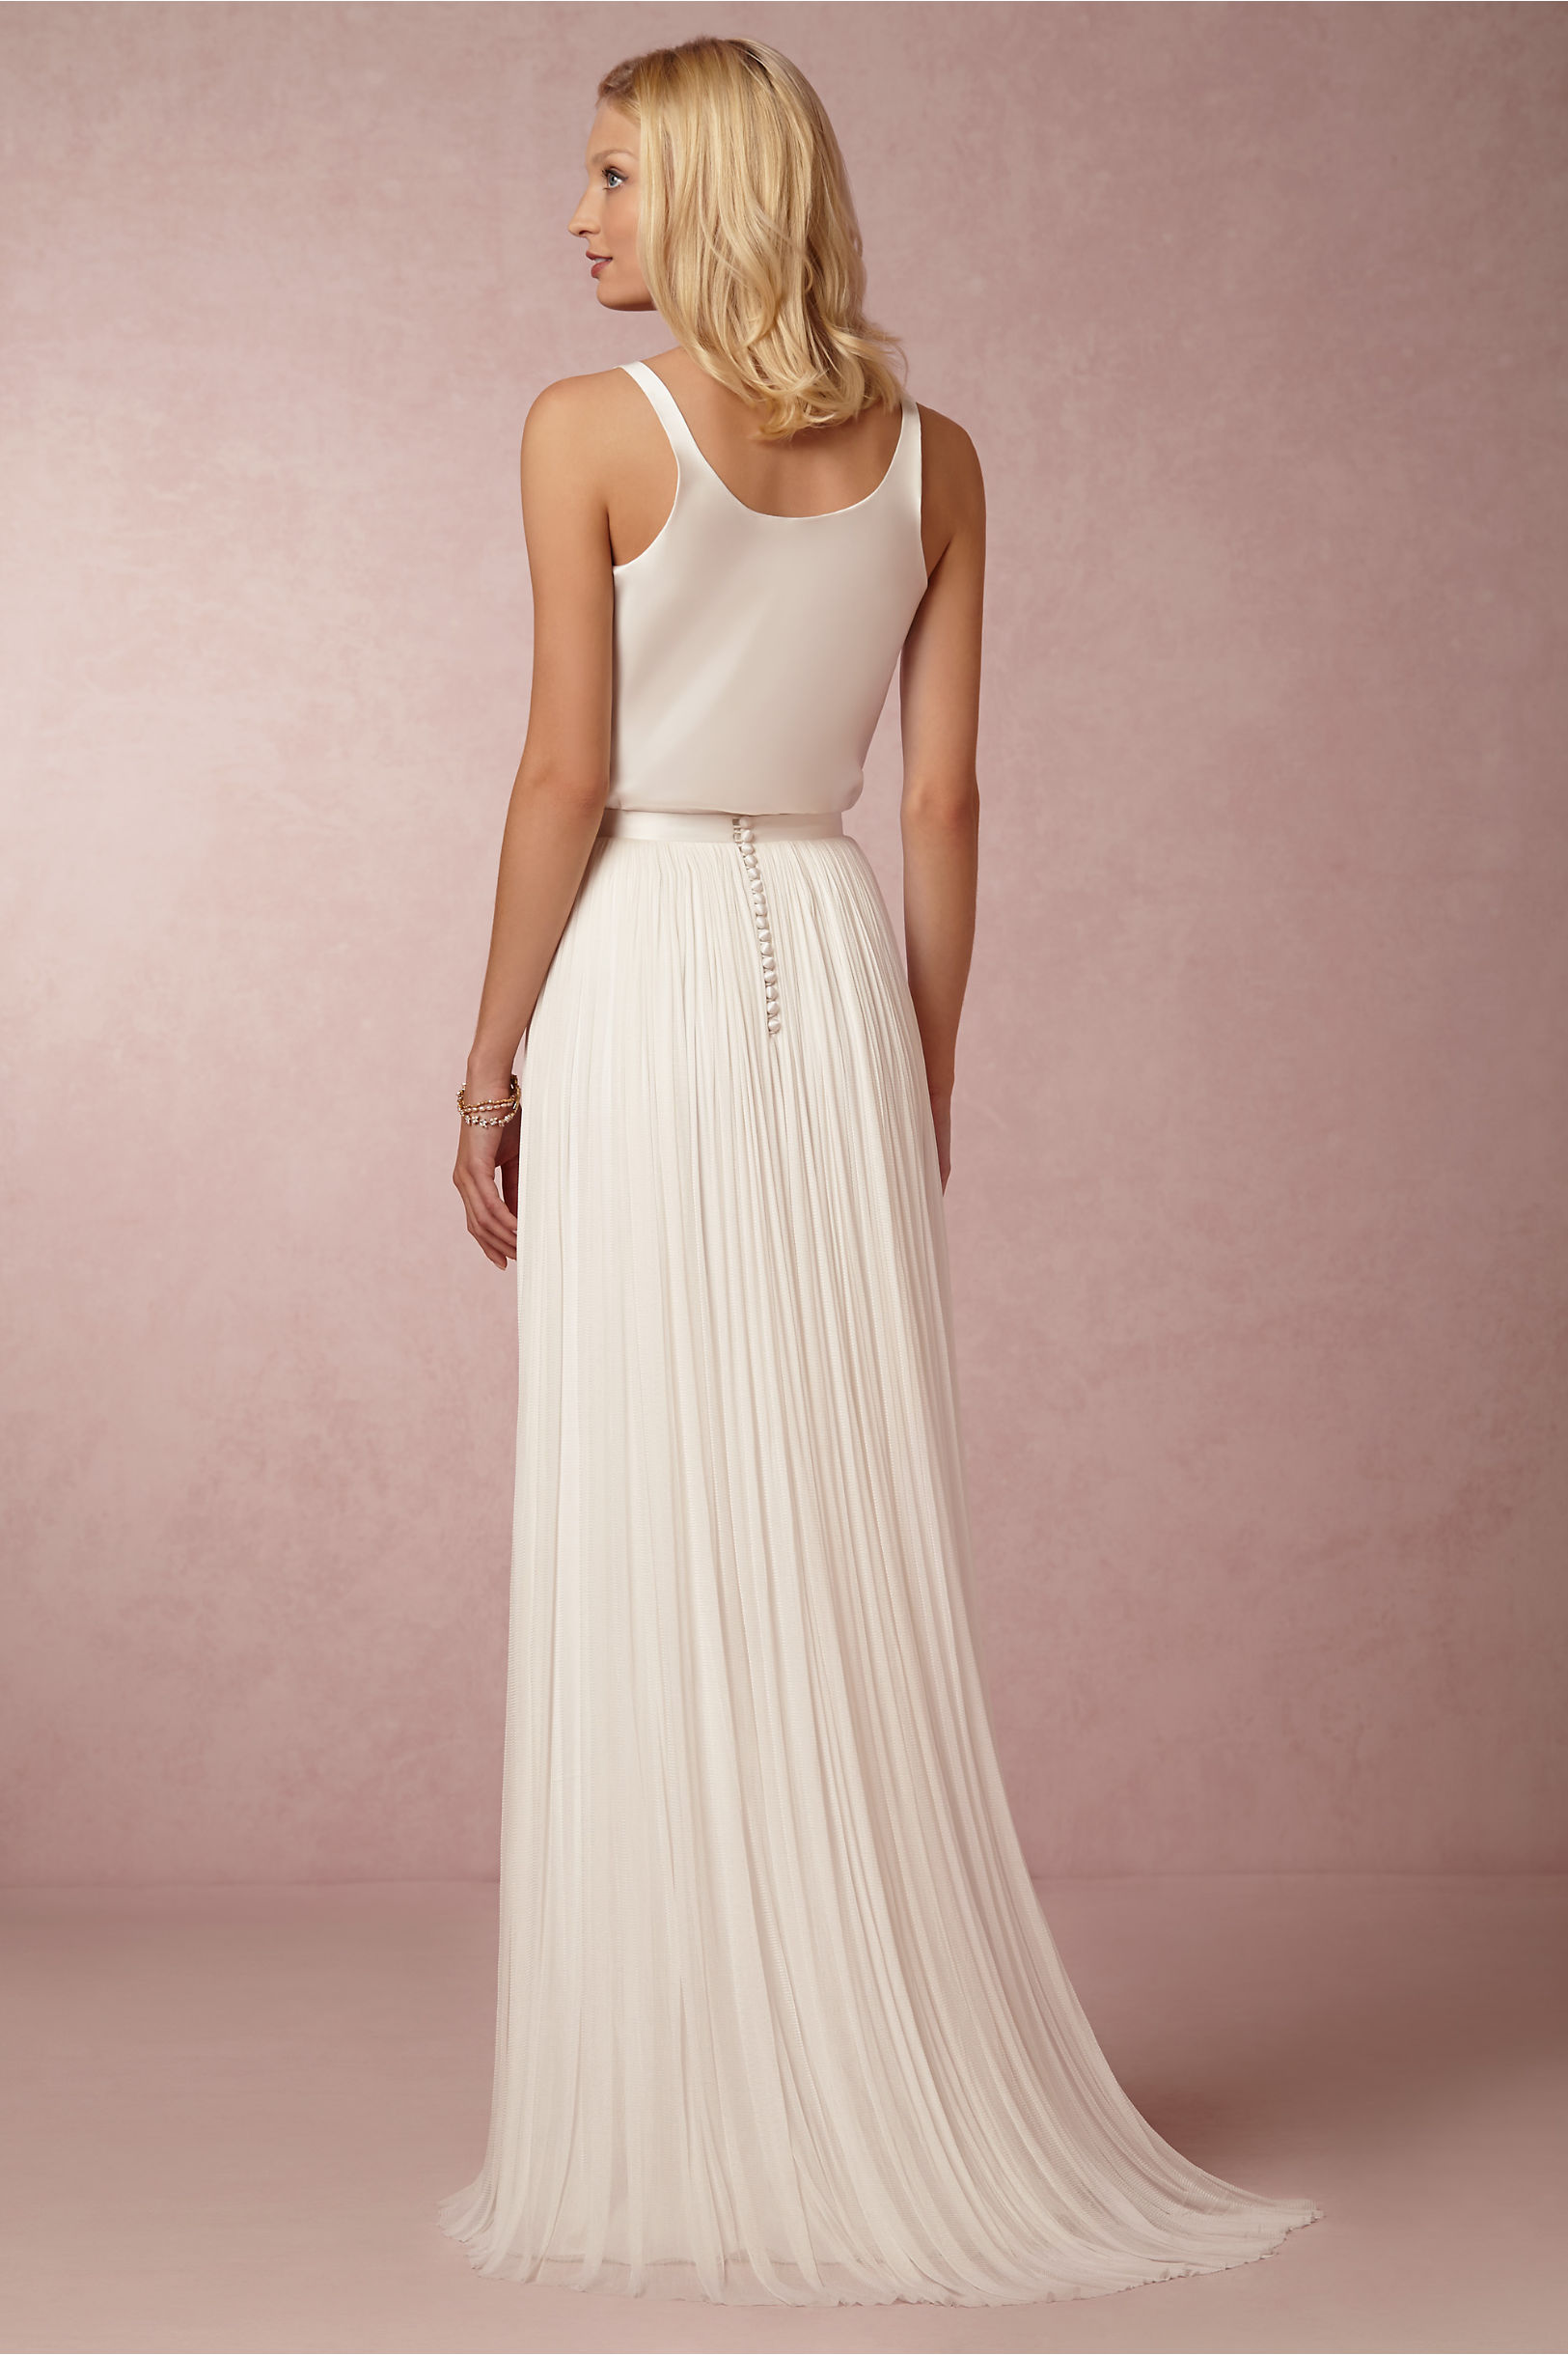 Casual, non-wedding, wedding dress?